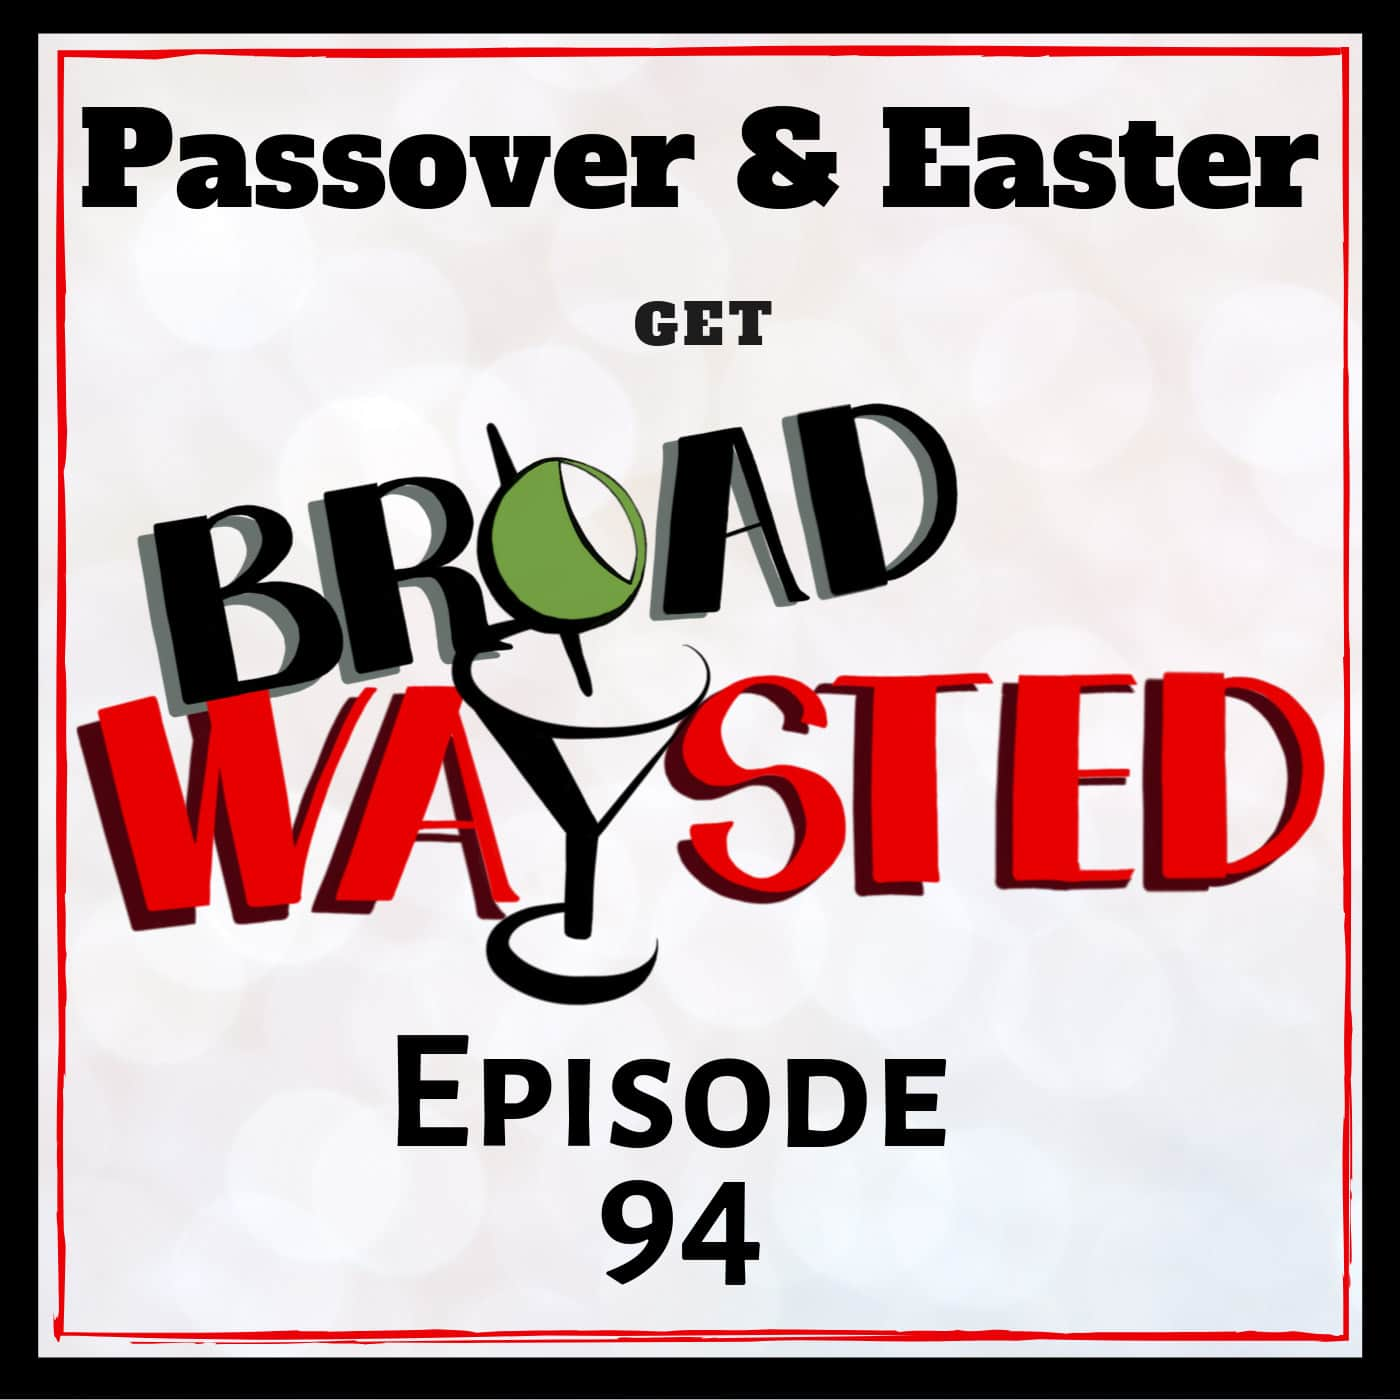 Broadwaysted Ep 94 Passover and Easter